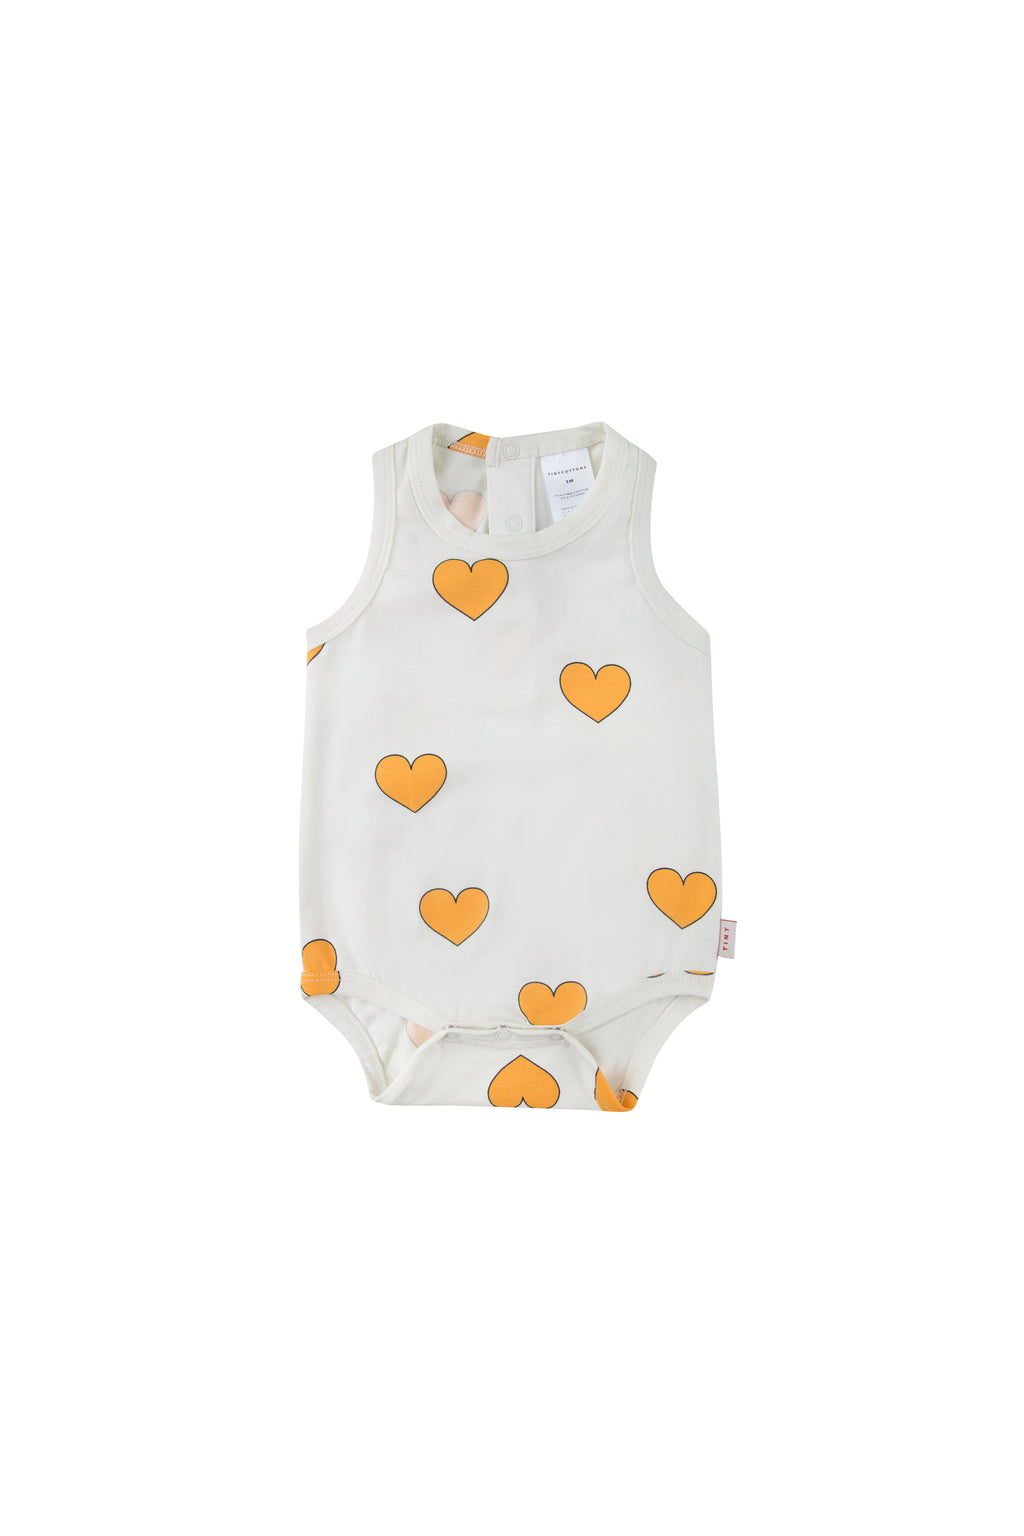 Tiny Cottons Hearts Body - Off White/Yellow